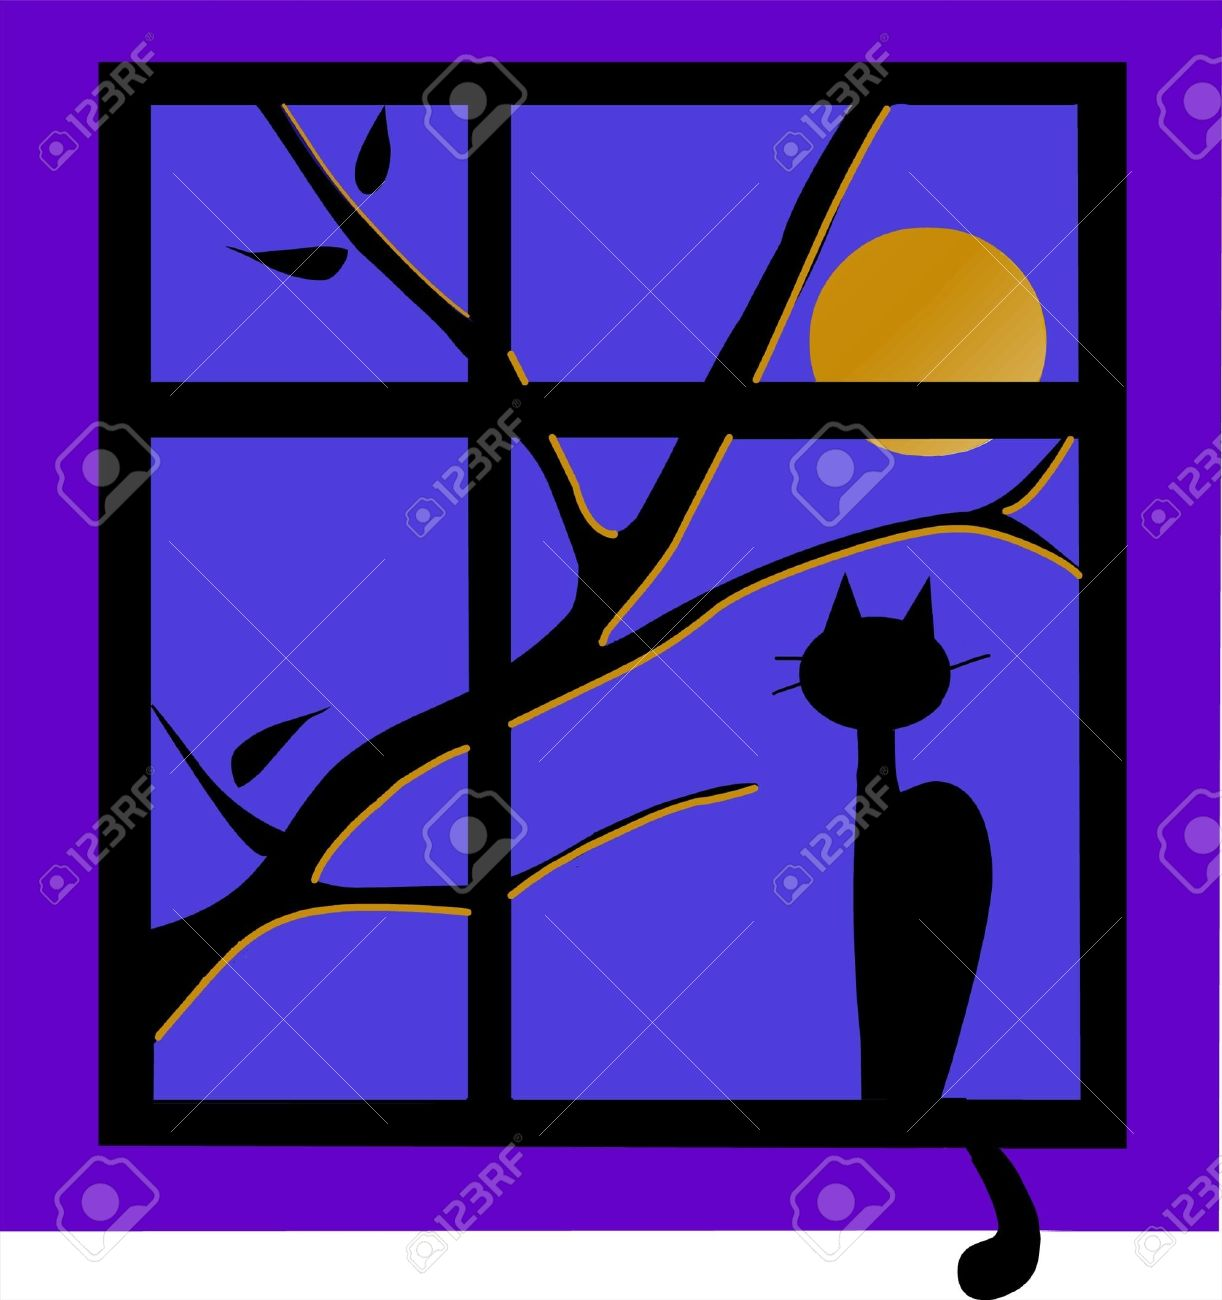 Window at night from outside - Night Outside The Window The Black Cat Outside The Window At Night